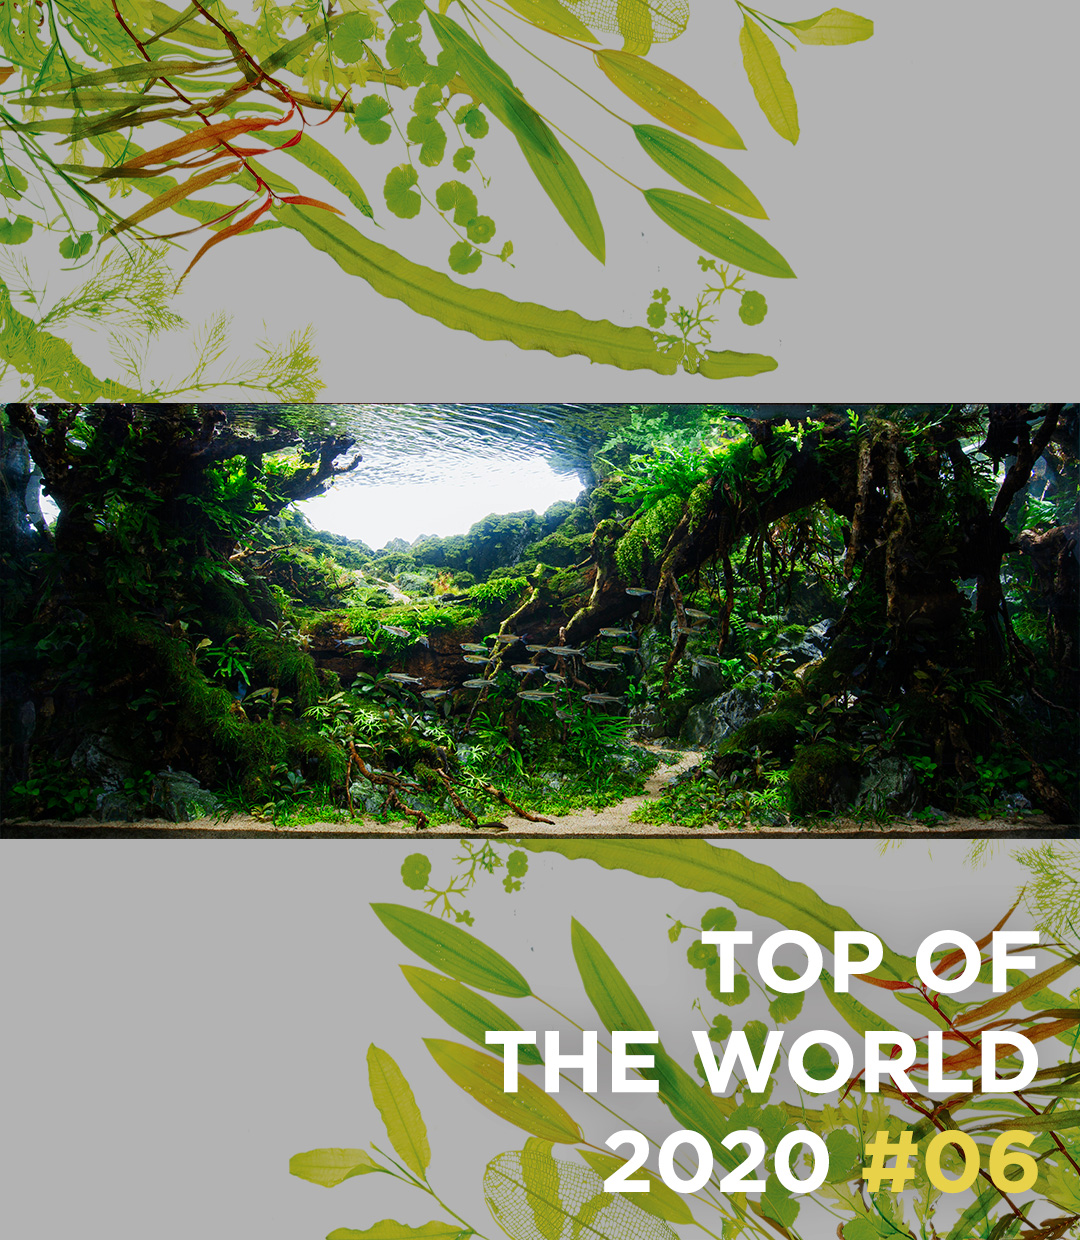 TOP OF THE WORLD 2020 #06 Jheng Yu Lyu